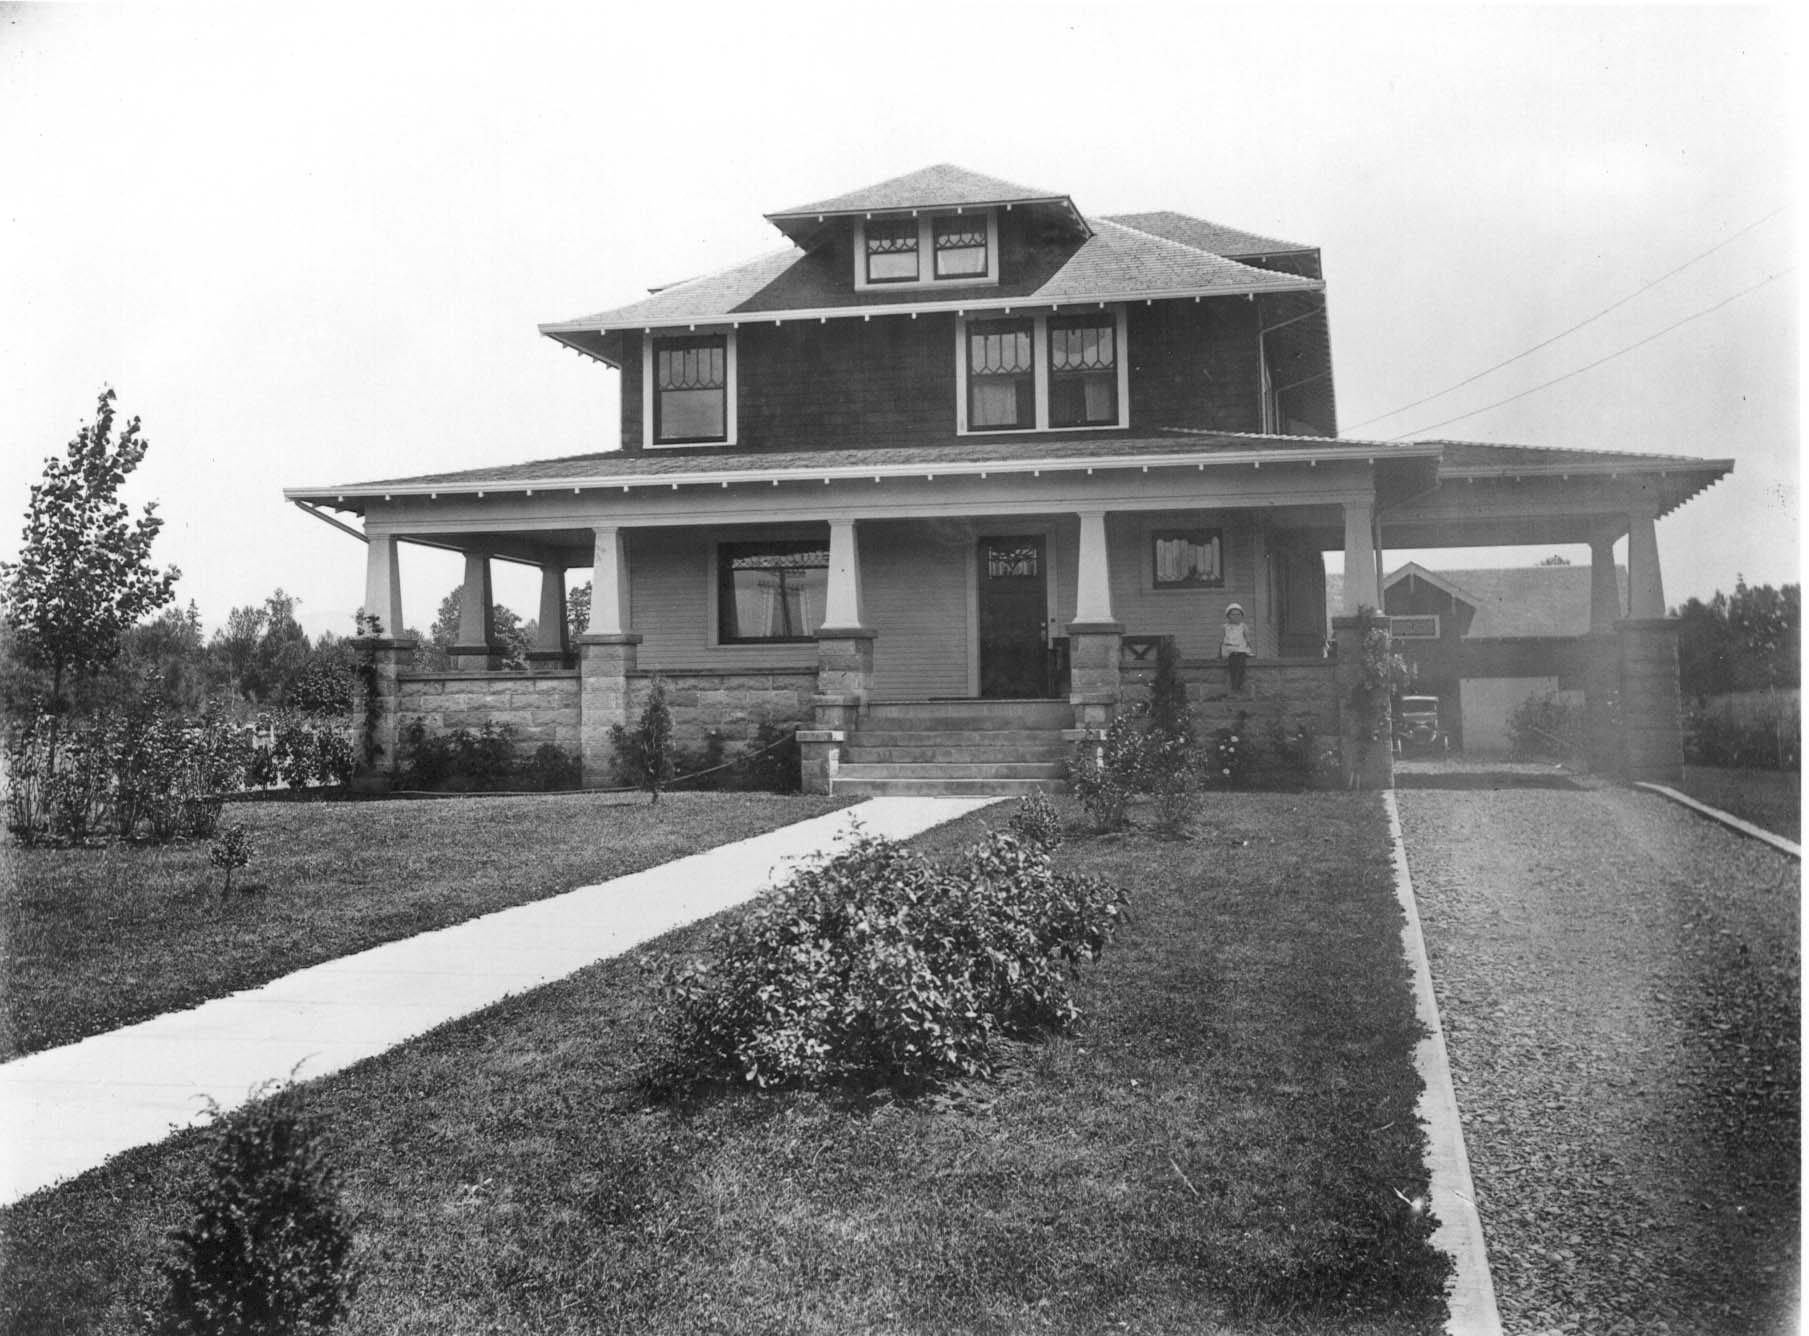 Historic photo of a craftsman style residence